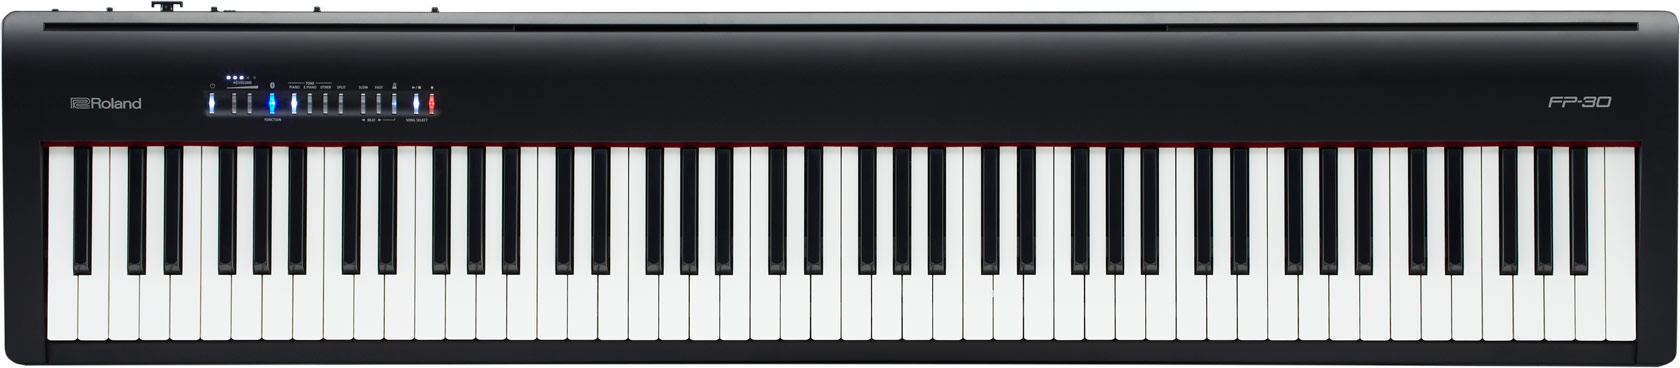 Roland FP-30 Digital Piano music accessory image